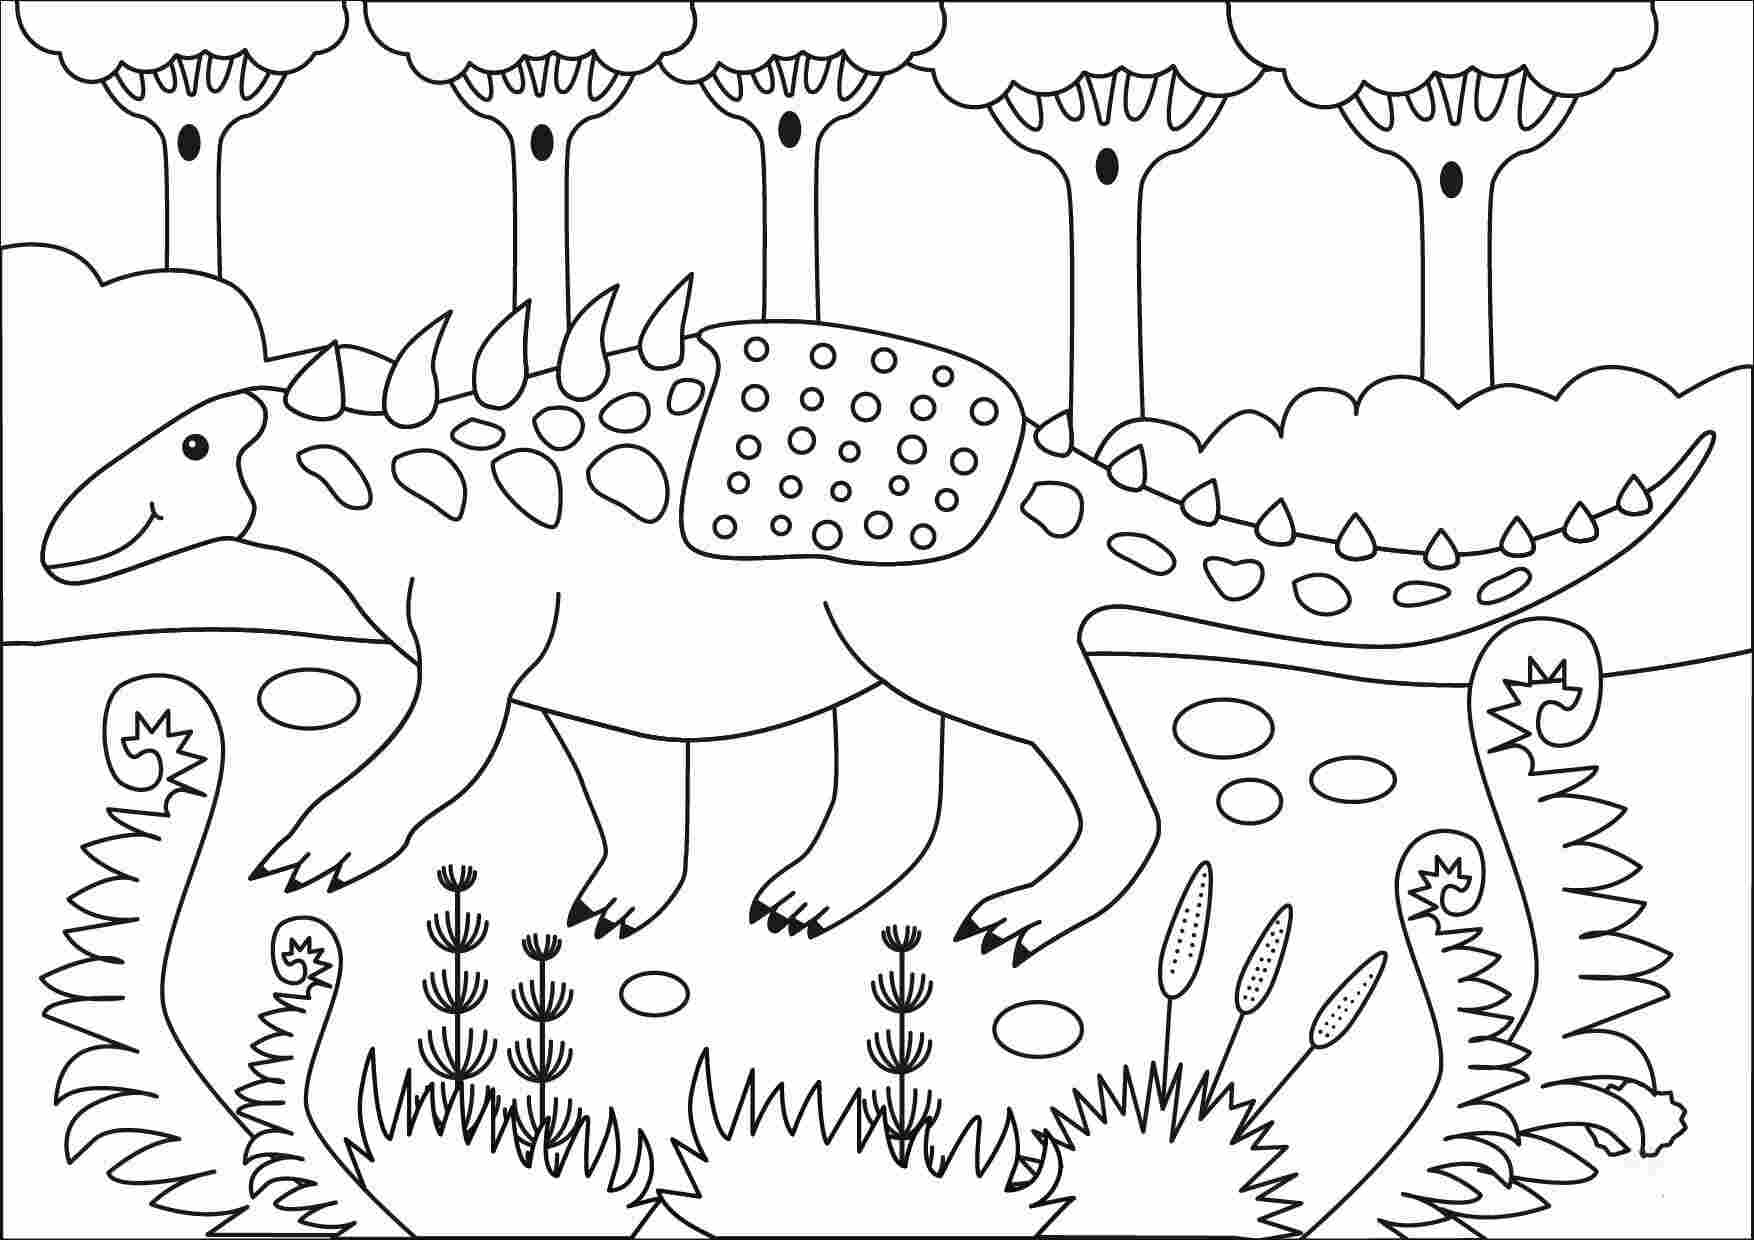 Polacanthus is a shy species that prefers to live alone Coloring Page